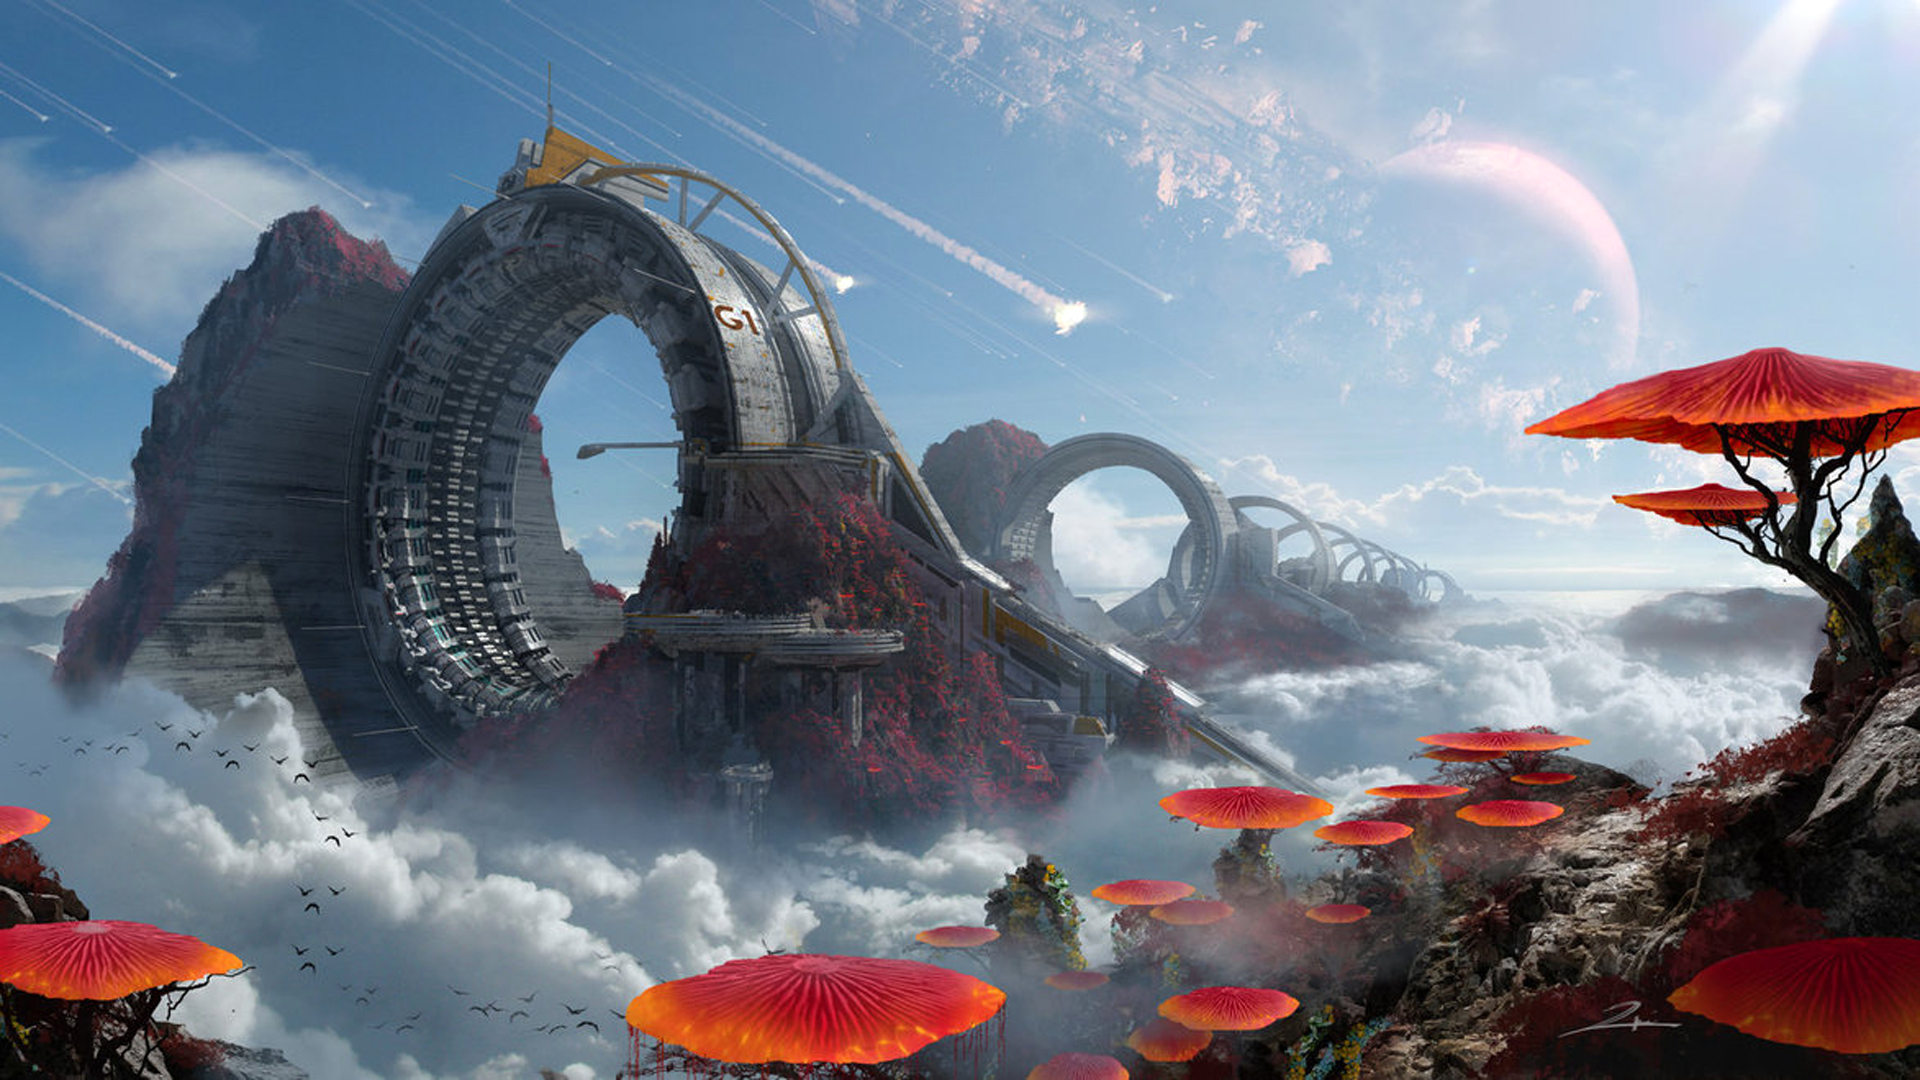 Cool Computer Wallpaper Sci Fi Landscape Concept Art 1920x1080 Wallpaper Teahub Io